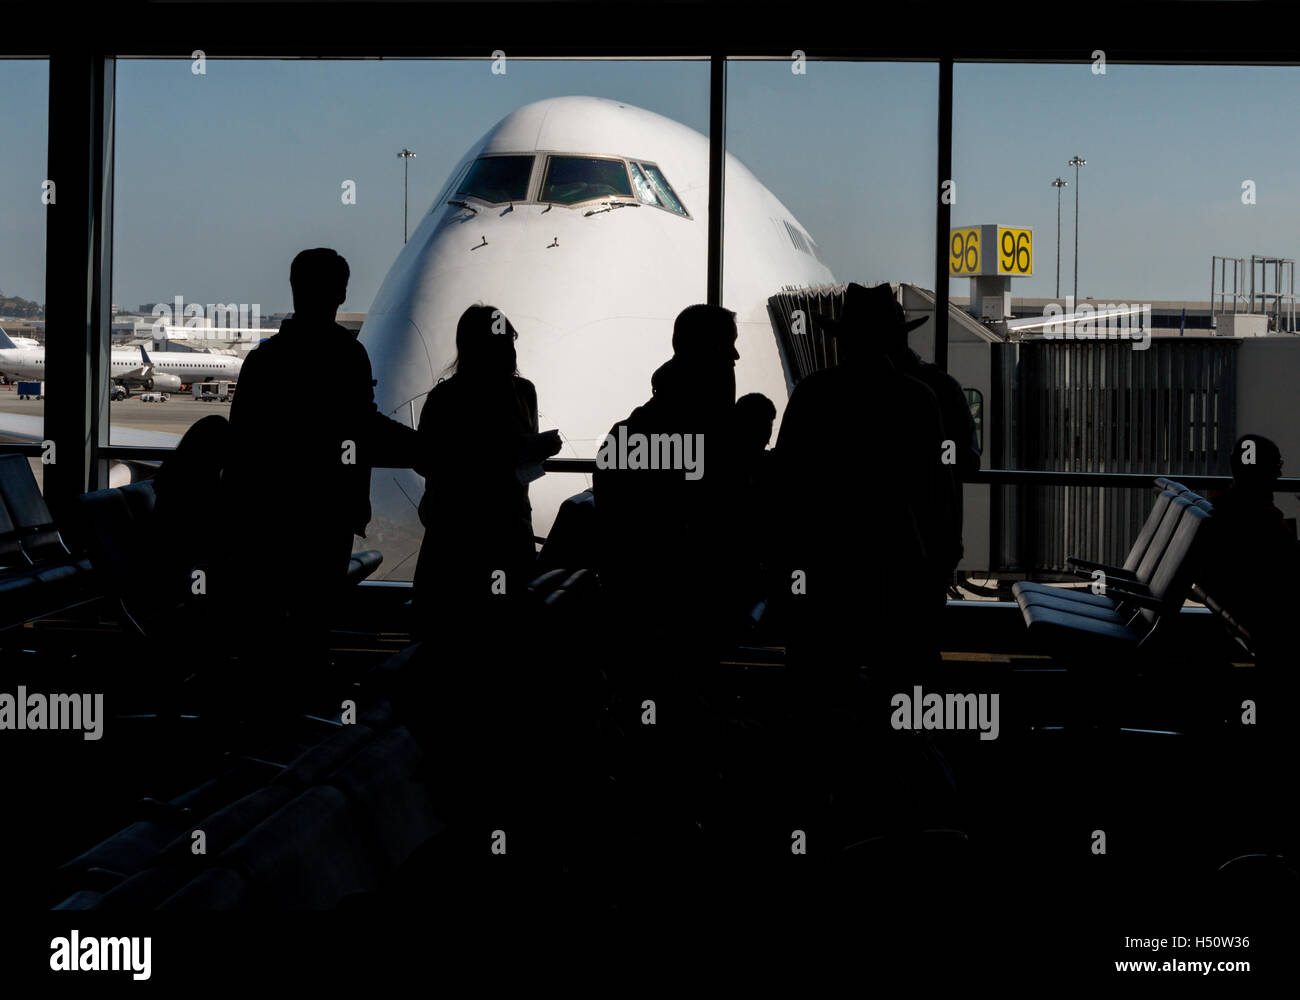 Silhouette of passengers waiting at the airport gate with the nose of an aircraft outside on the airport tarmac. Stock Photo